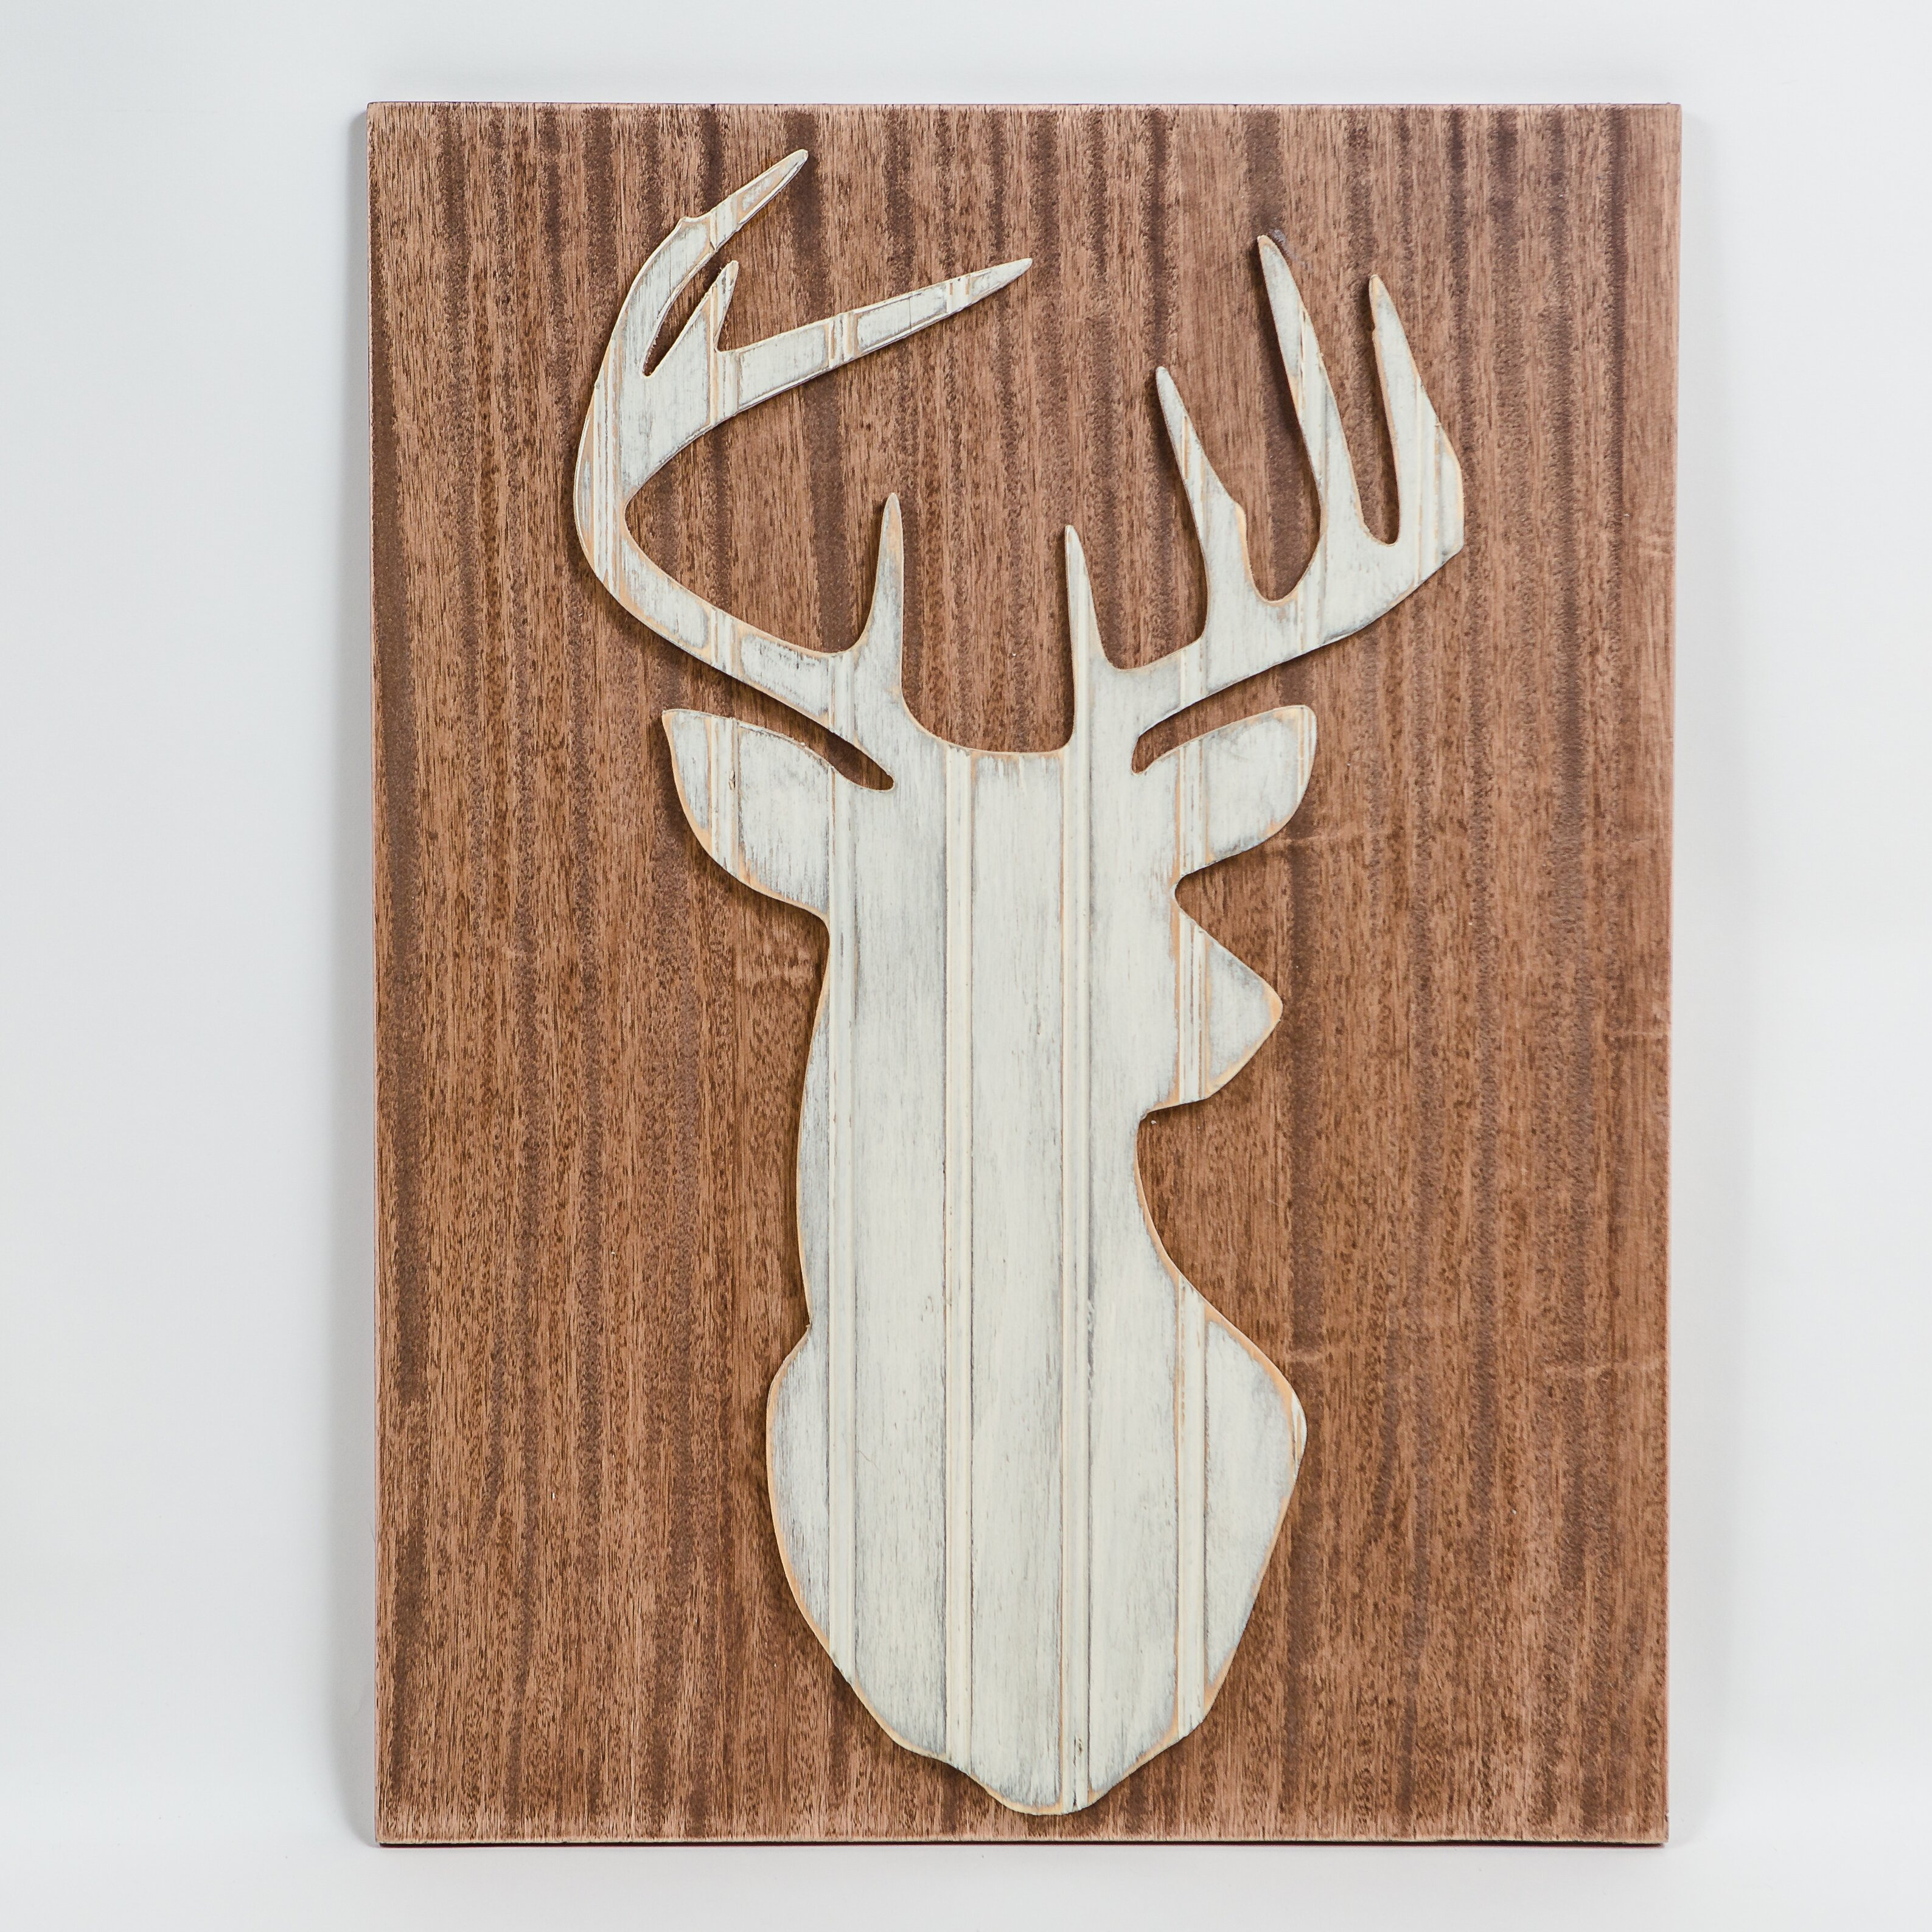 Awe Inspiring Gracegraffiti Coastal Wildlife Whitetail Deer Wall Decor Reviews Largest Home Design Picture Inspirations Pitcheantrous